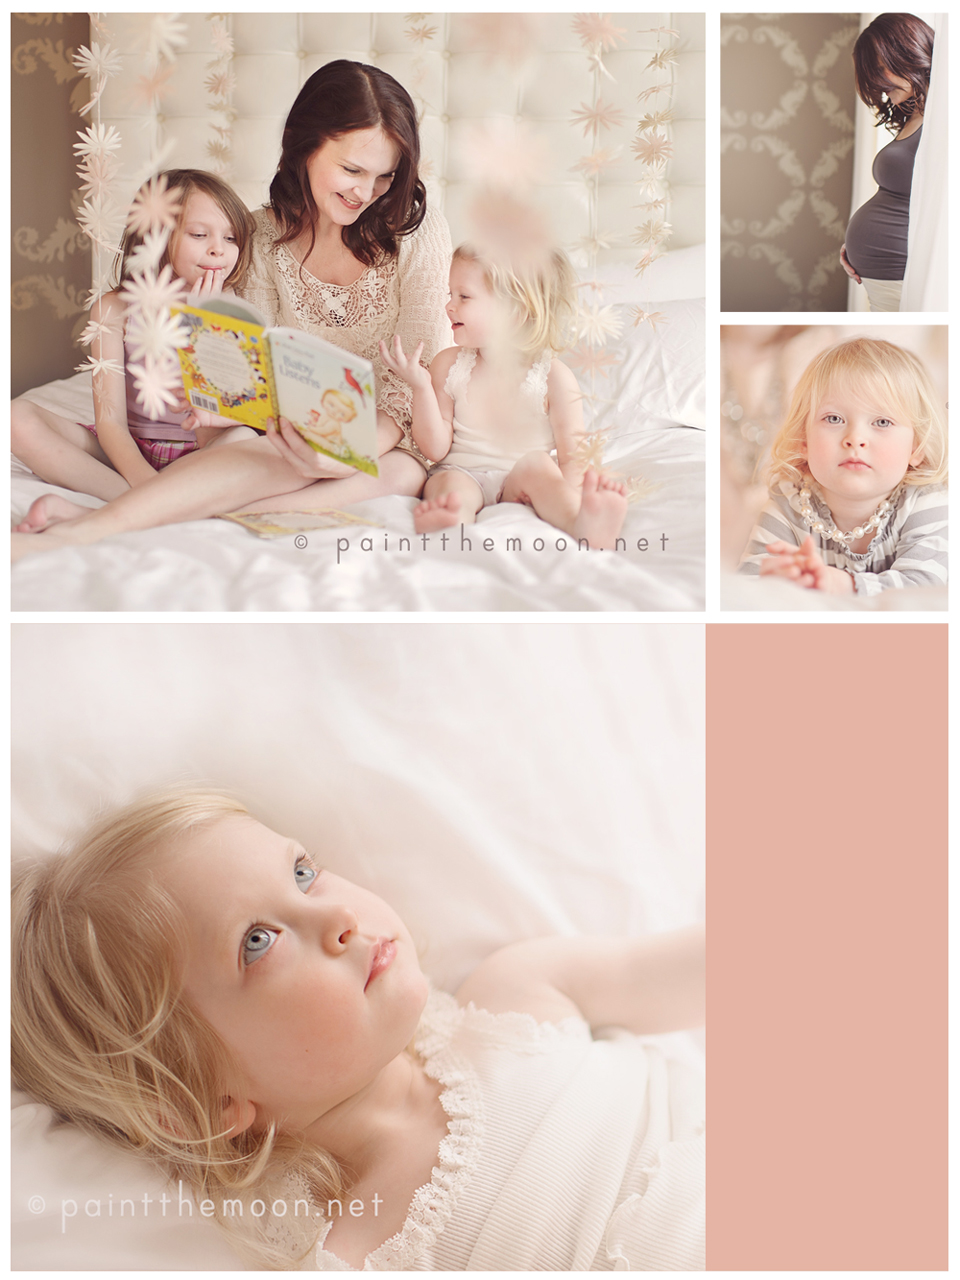 Maternity Photography | Soft, Indoor, Natural Light | Paint the Moon Photoshop Actions